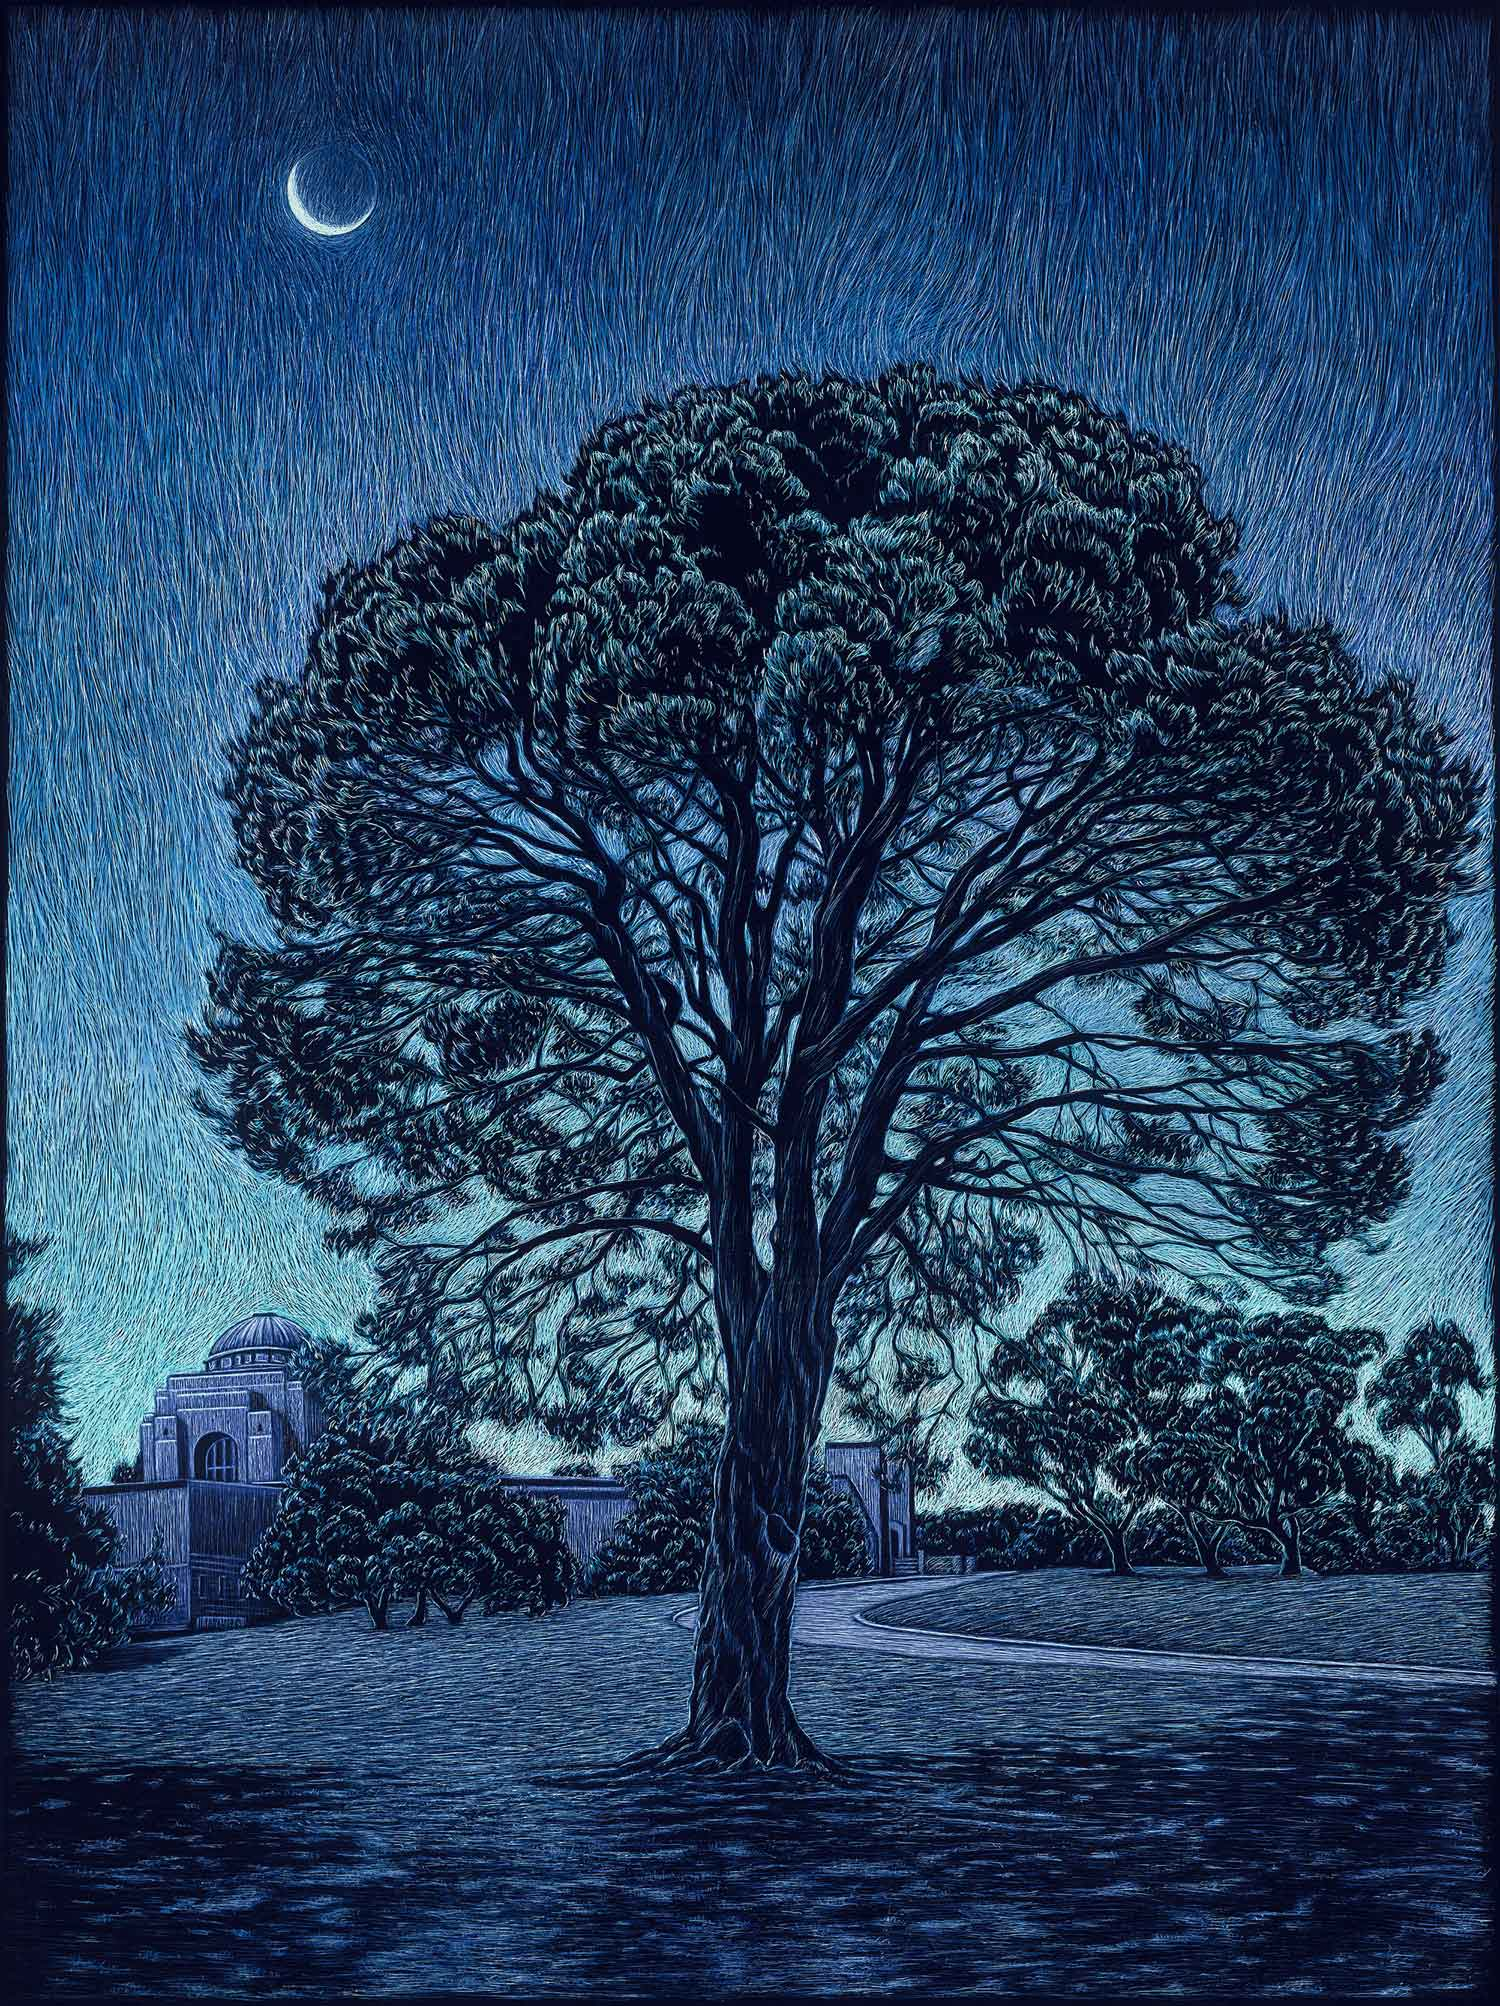 THE LONE PINE, AUSTRALIAN WAR MEMORIAL  61 X 45.5 CM,  EDITION OF 50  PIGMENT ON COTTON RAG PAPER  $1,100